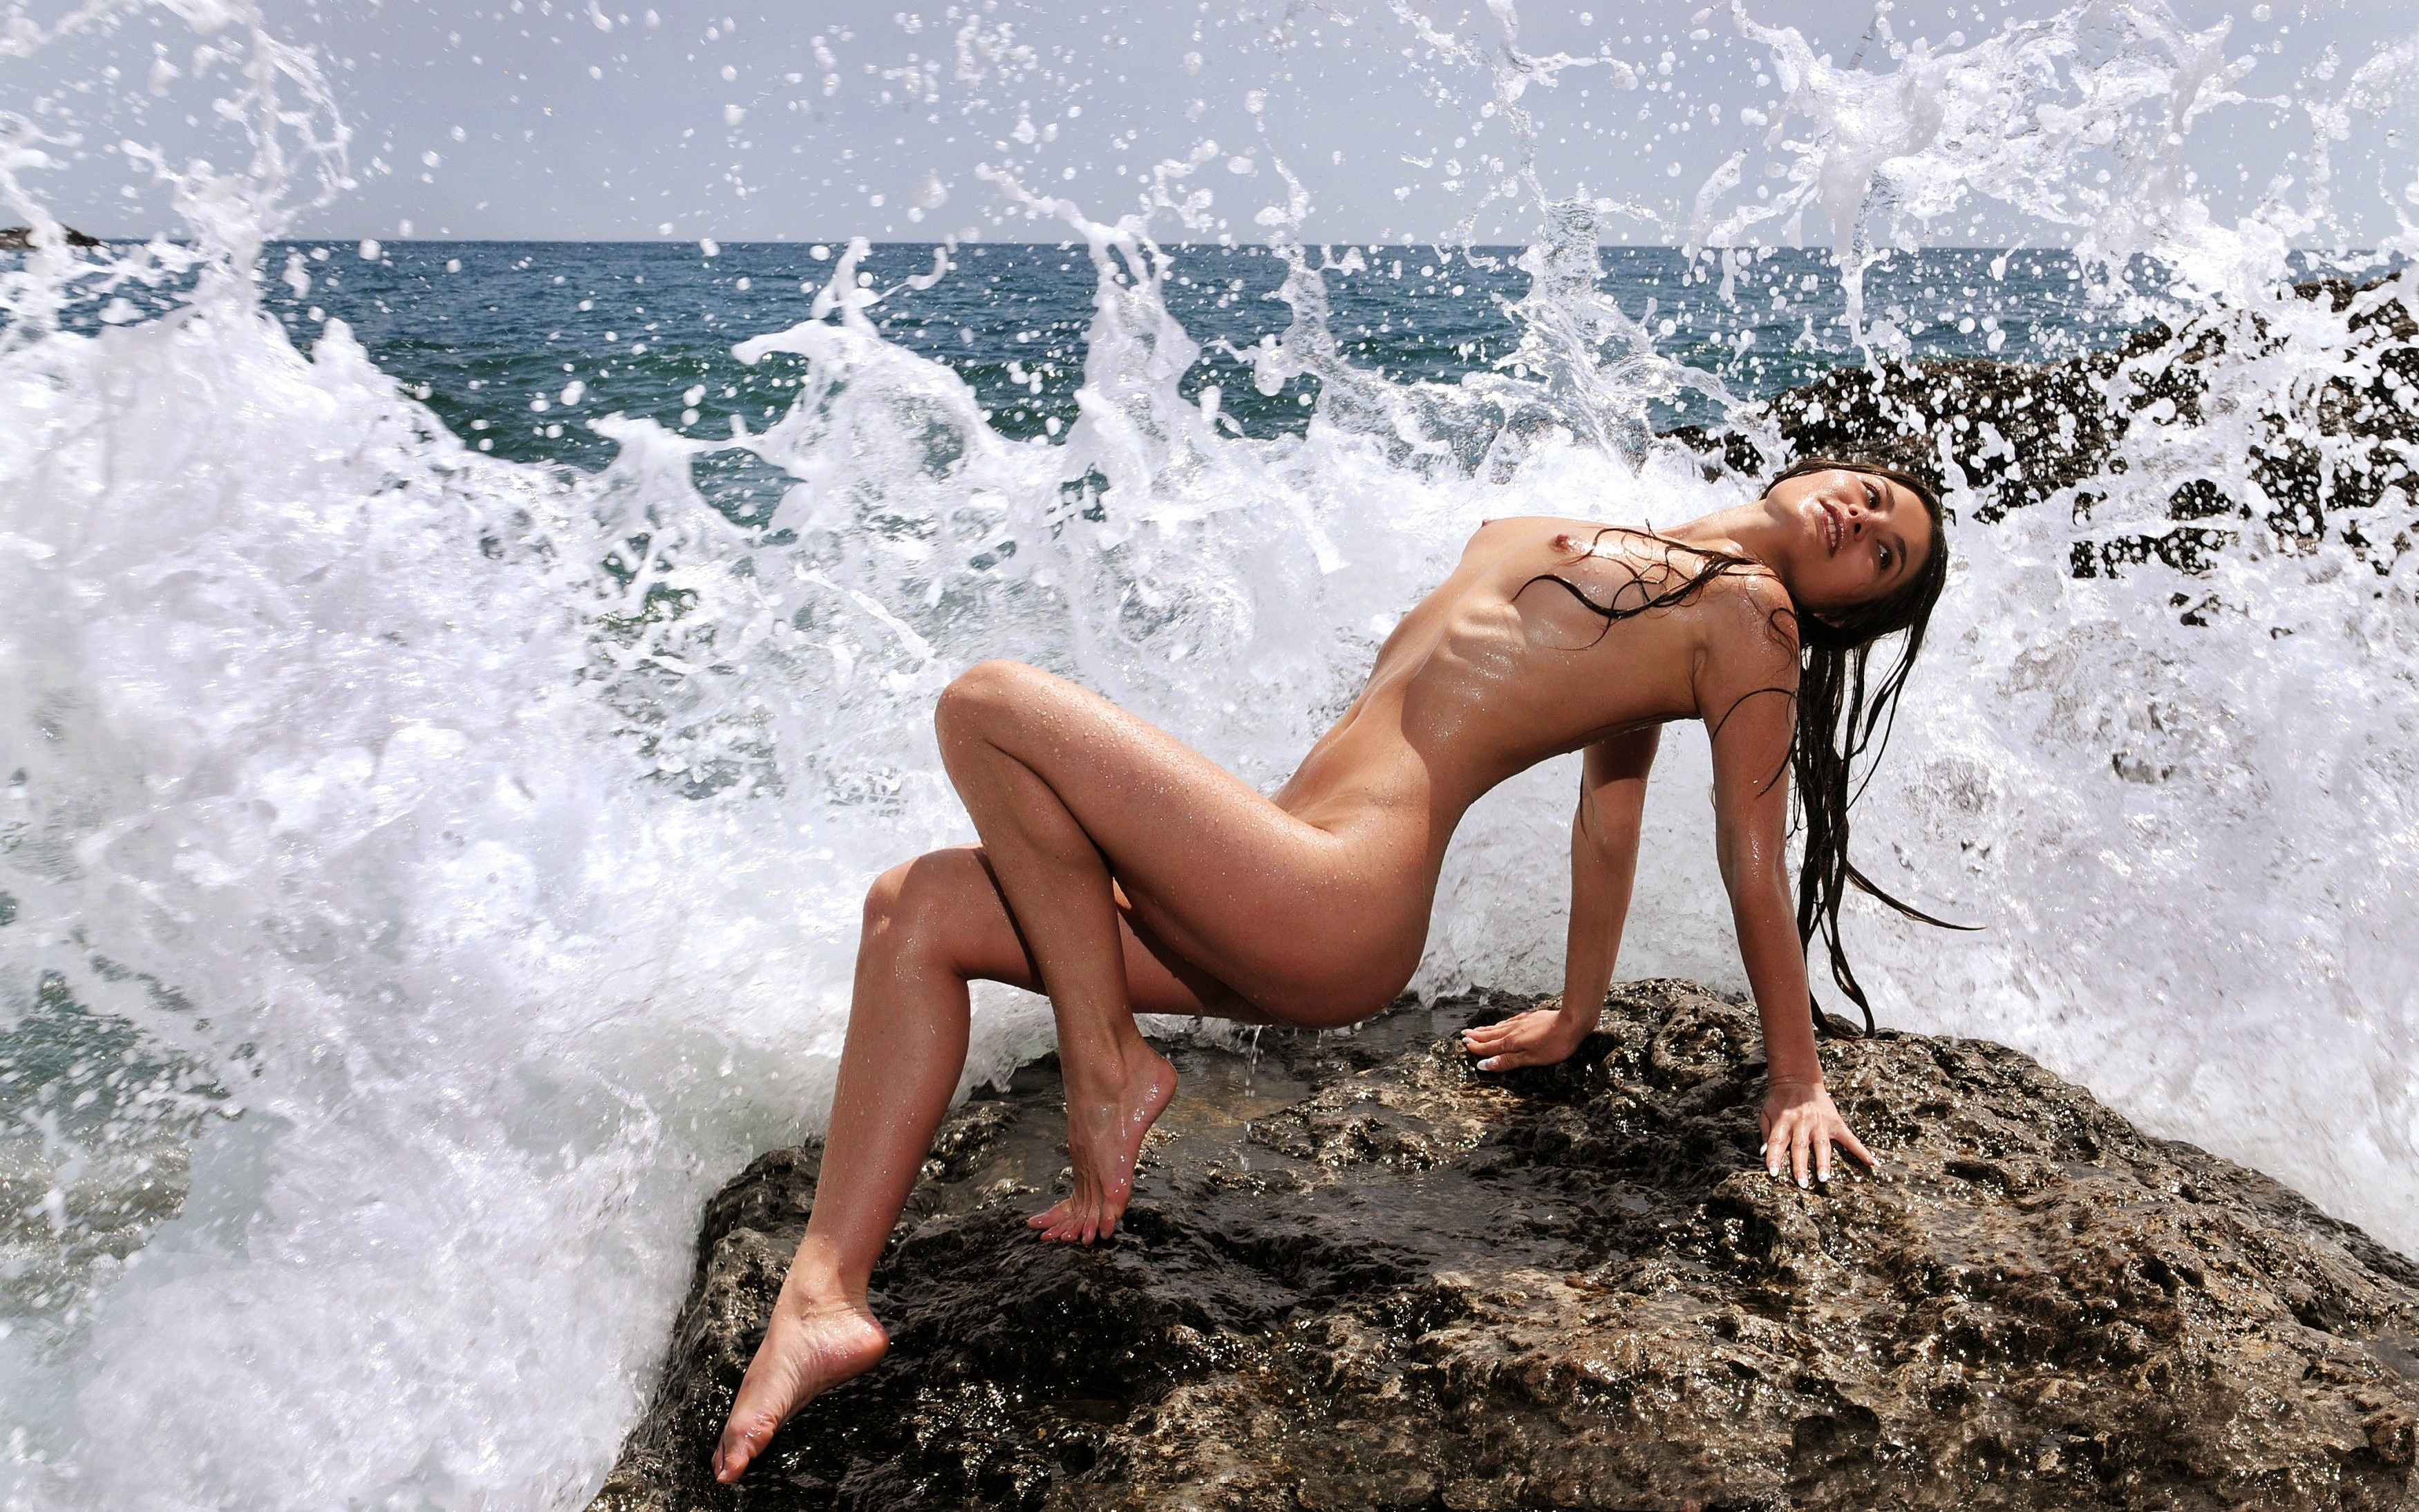 Sexy bar refaeli gets dirty on trip to dead sea as she covers herself in mud